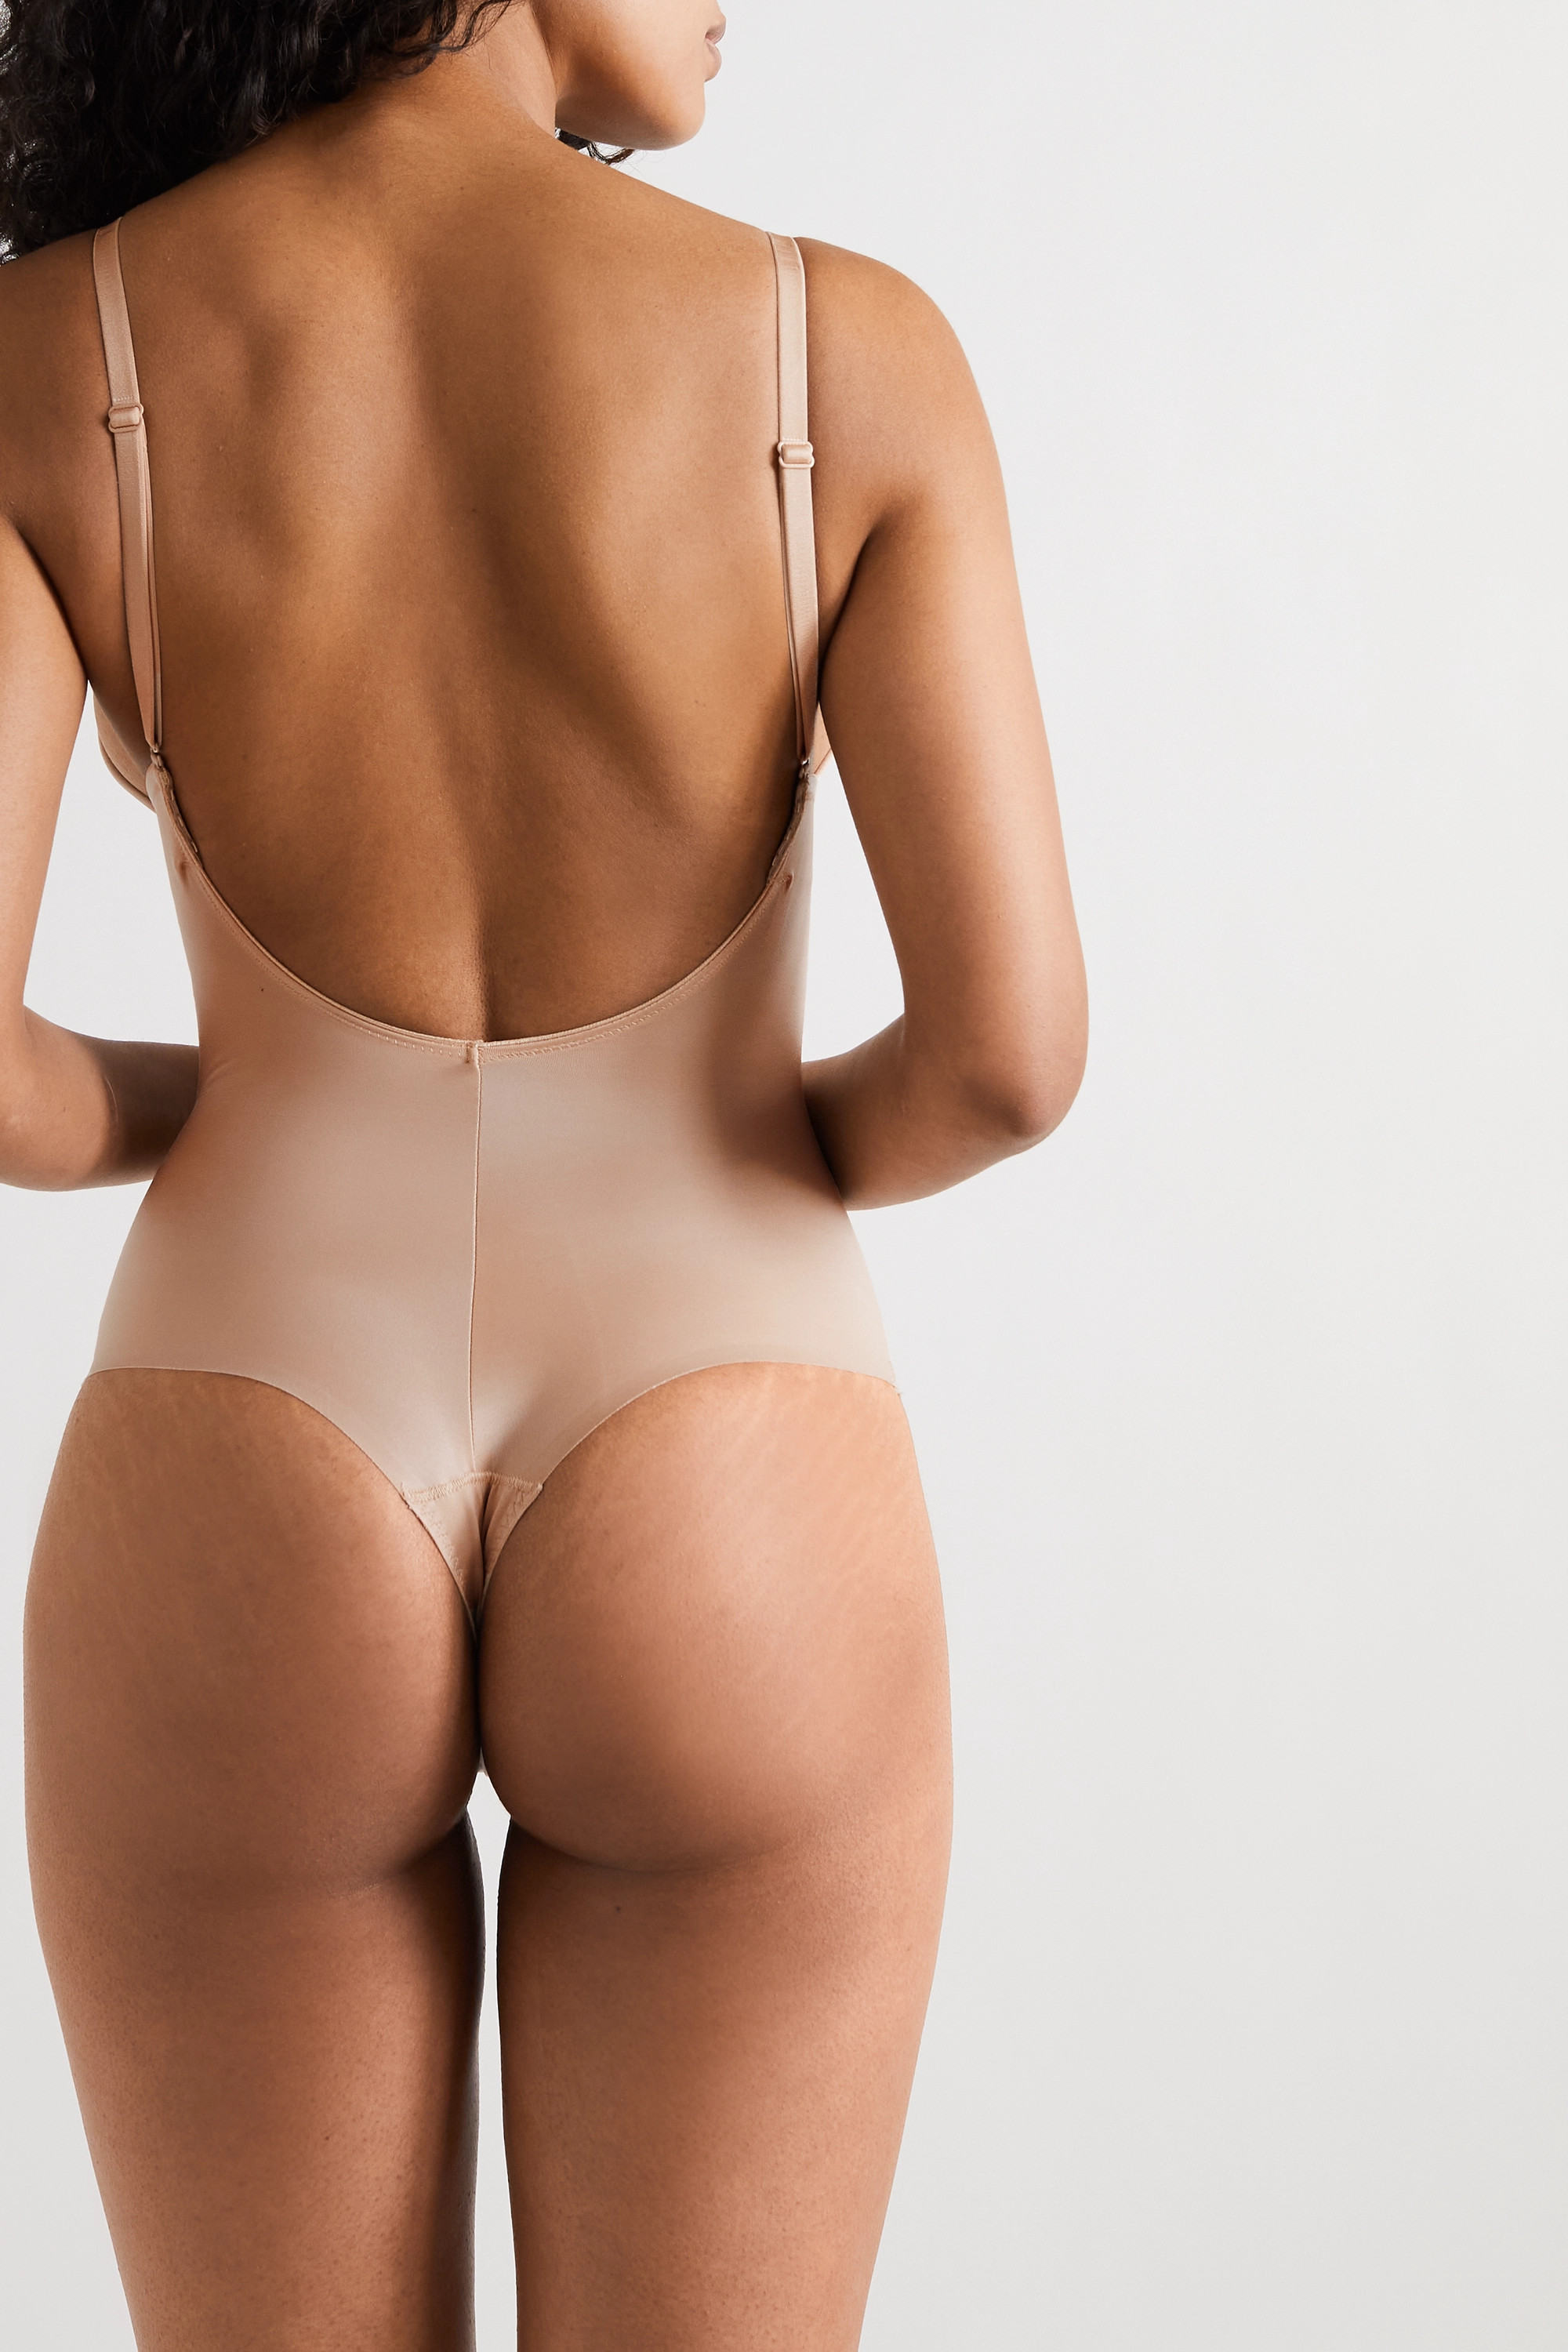 Spanx Suit Your Fancy stretch-jersey thong bodysuit